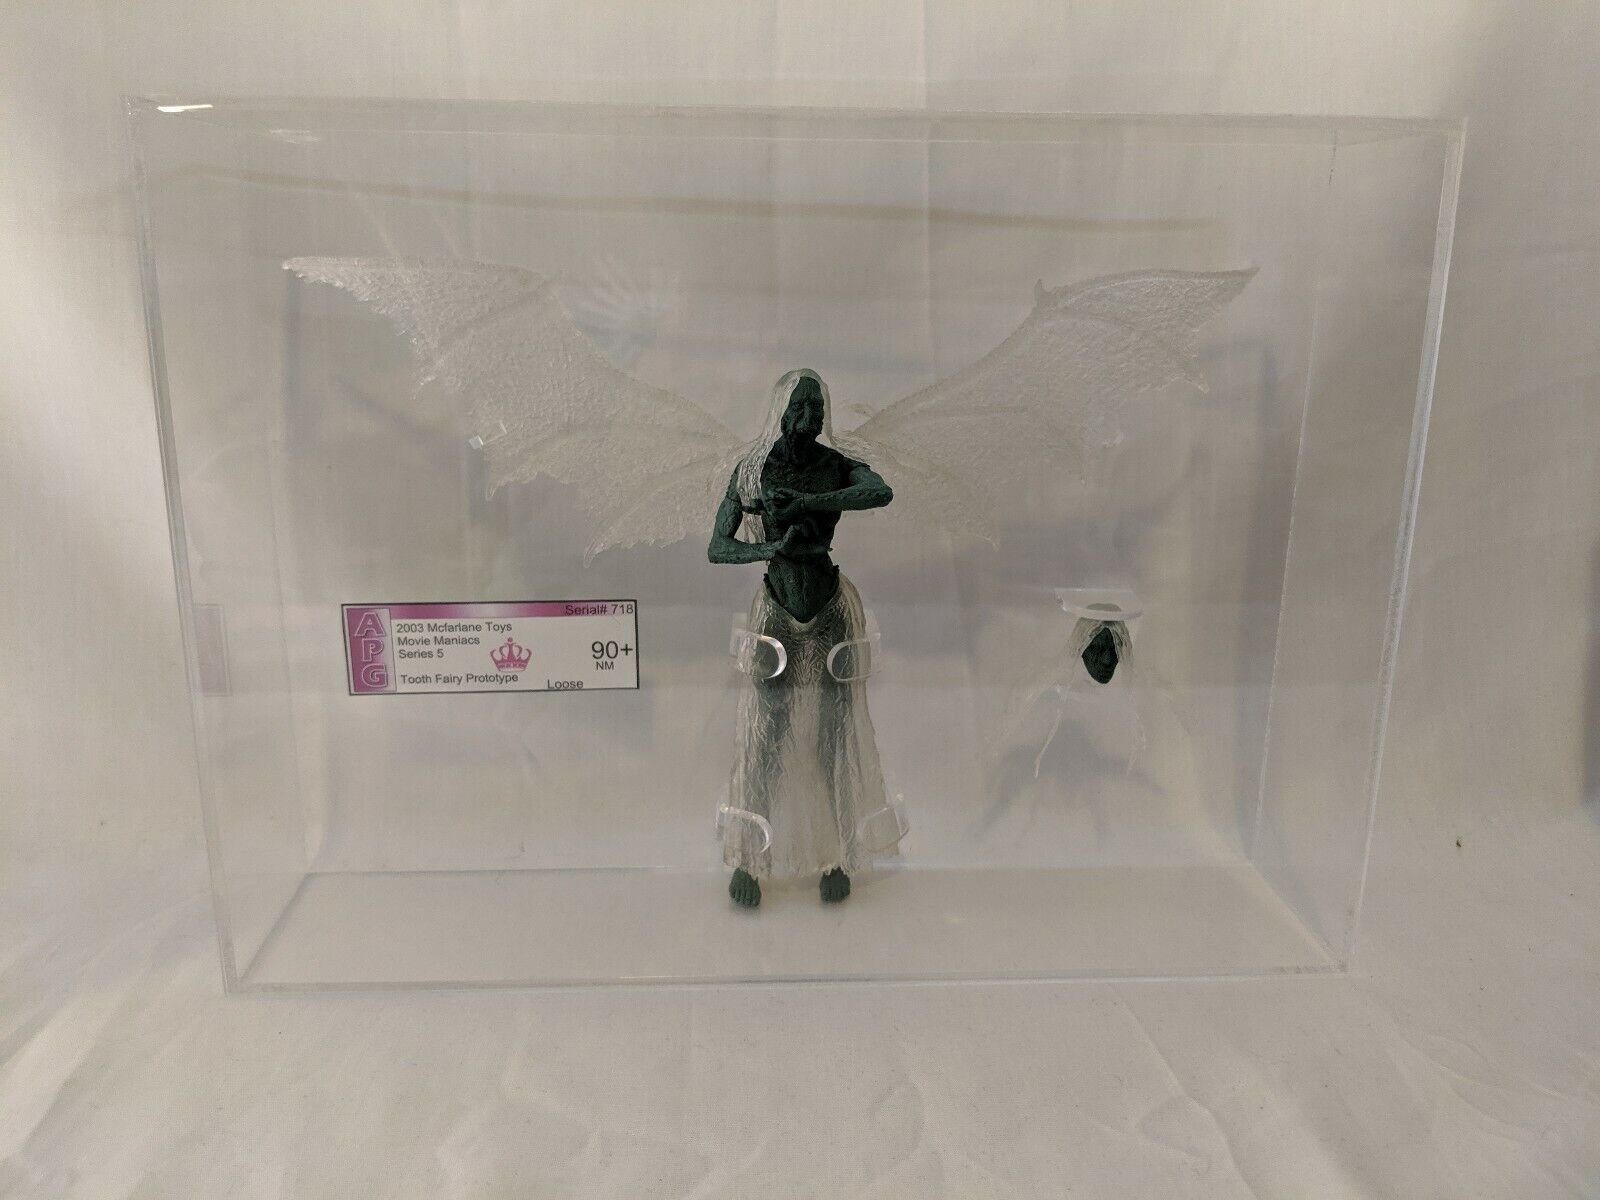 Mcfarlane movie maniacs Series 5 Tooth Fairy Prossootype Apg Graded With...